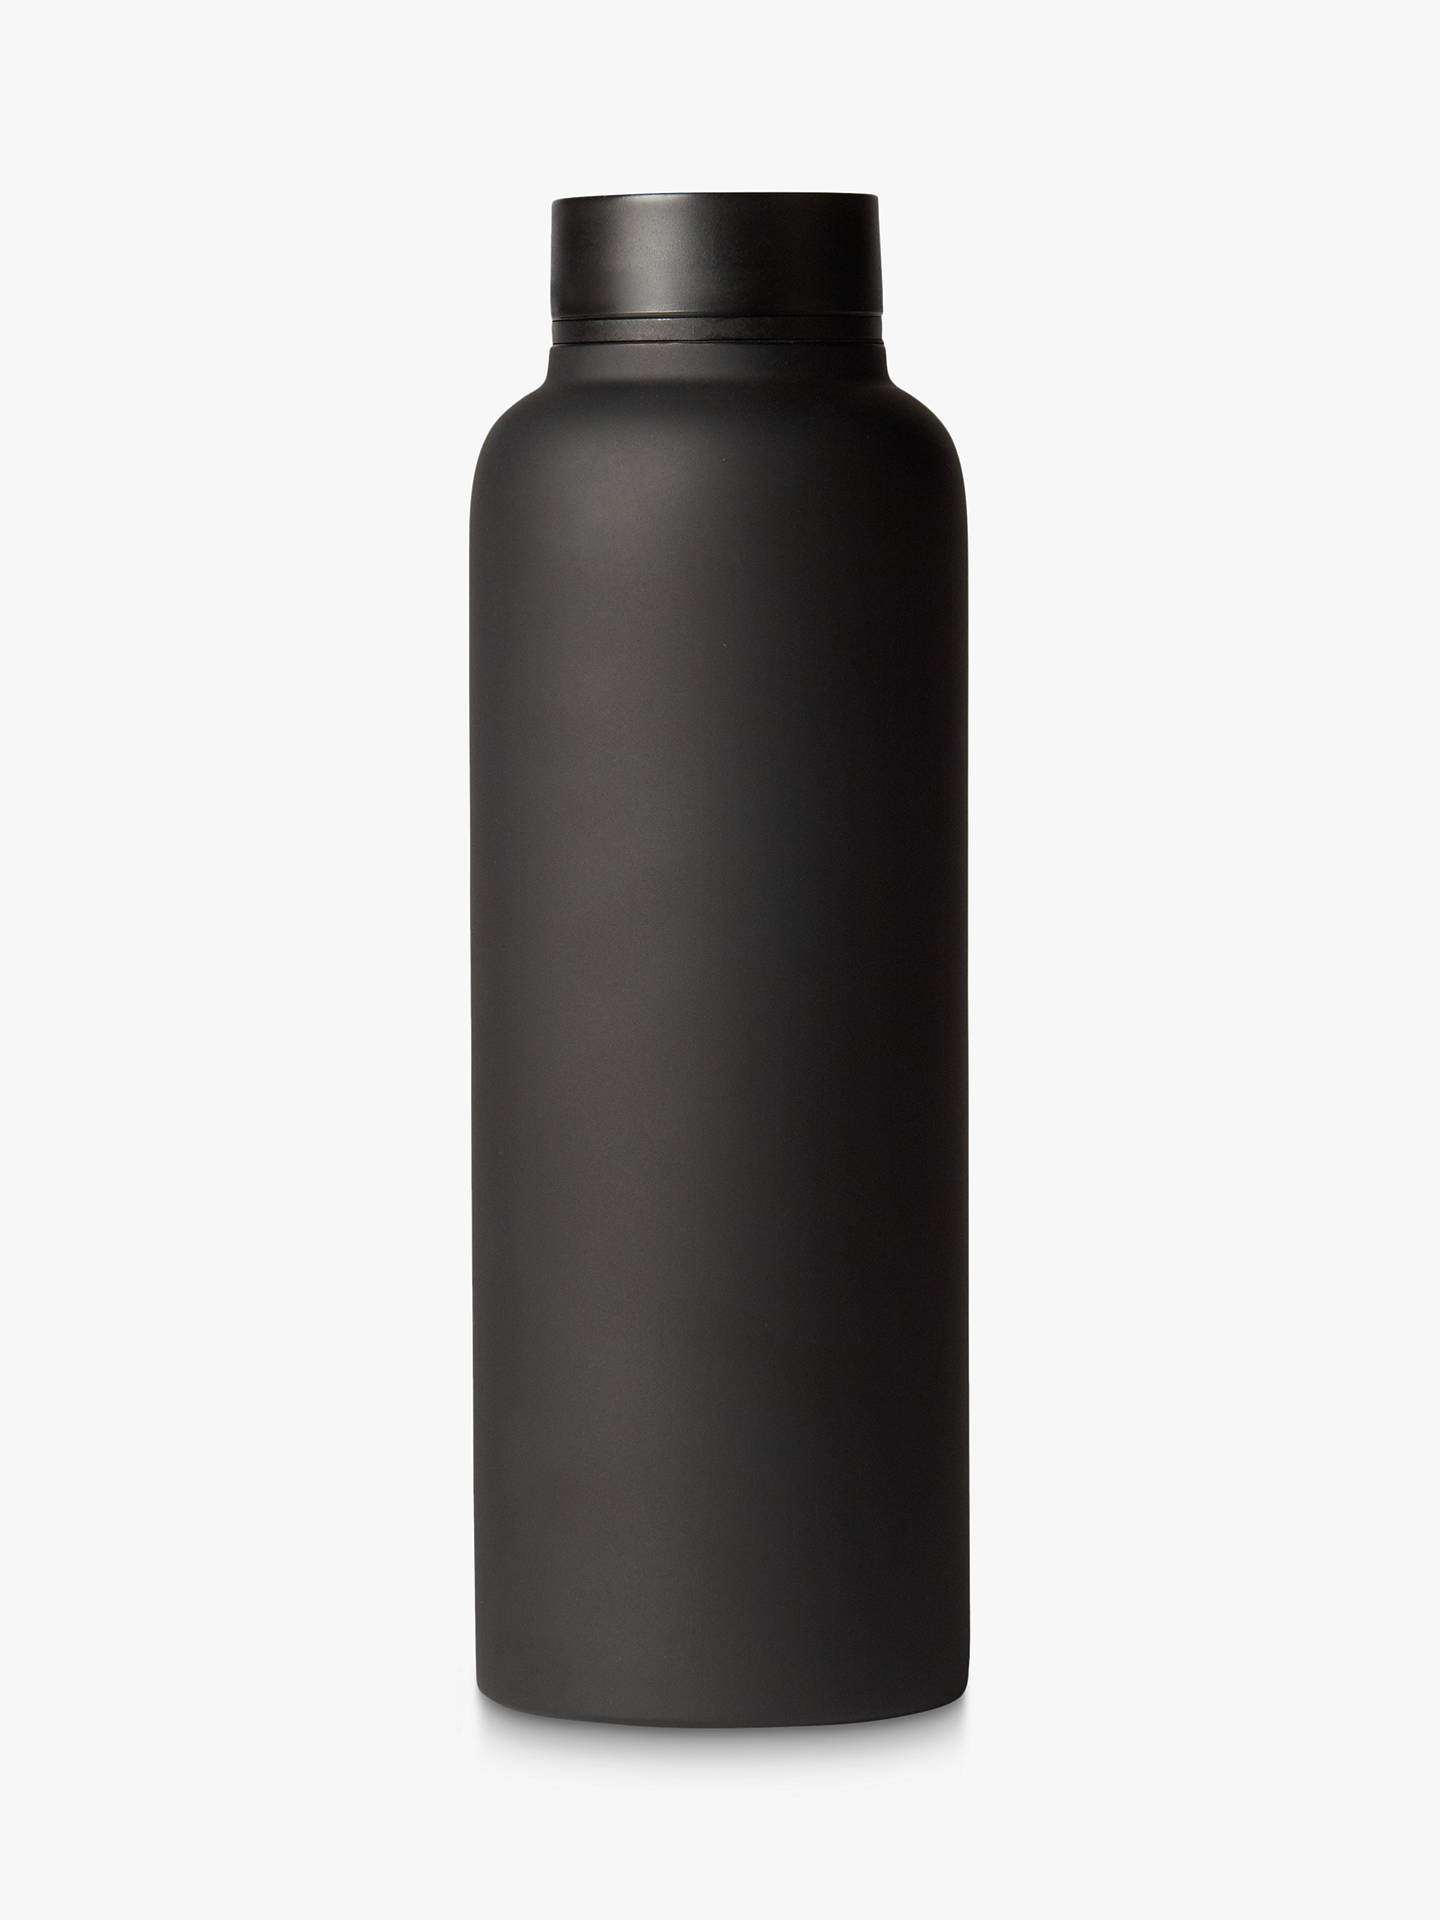 BuyT2 Travel Flask, Stainless Steel, Black Online at johnlewis.com